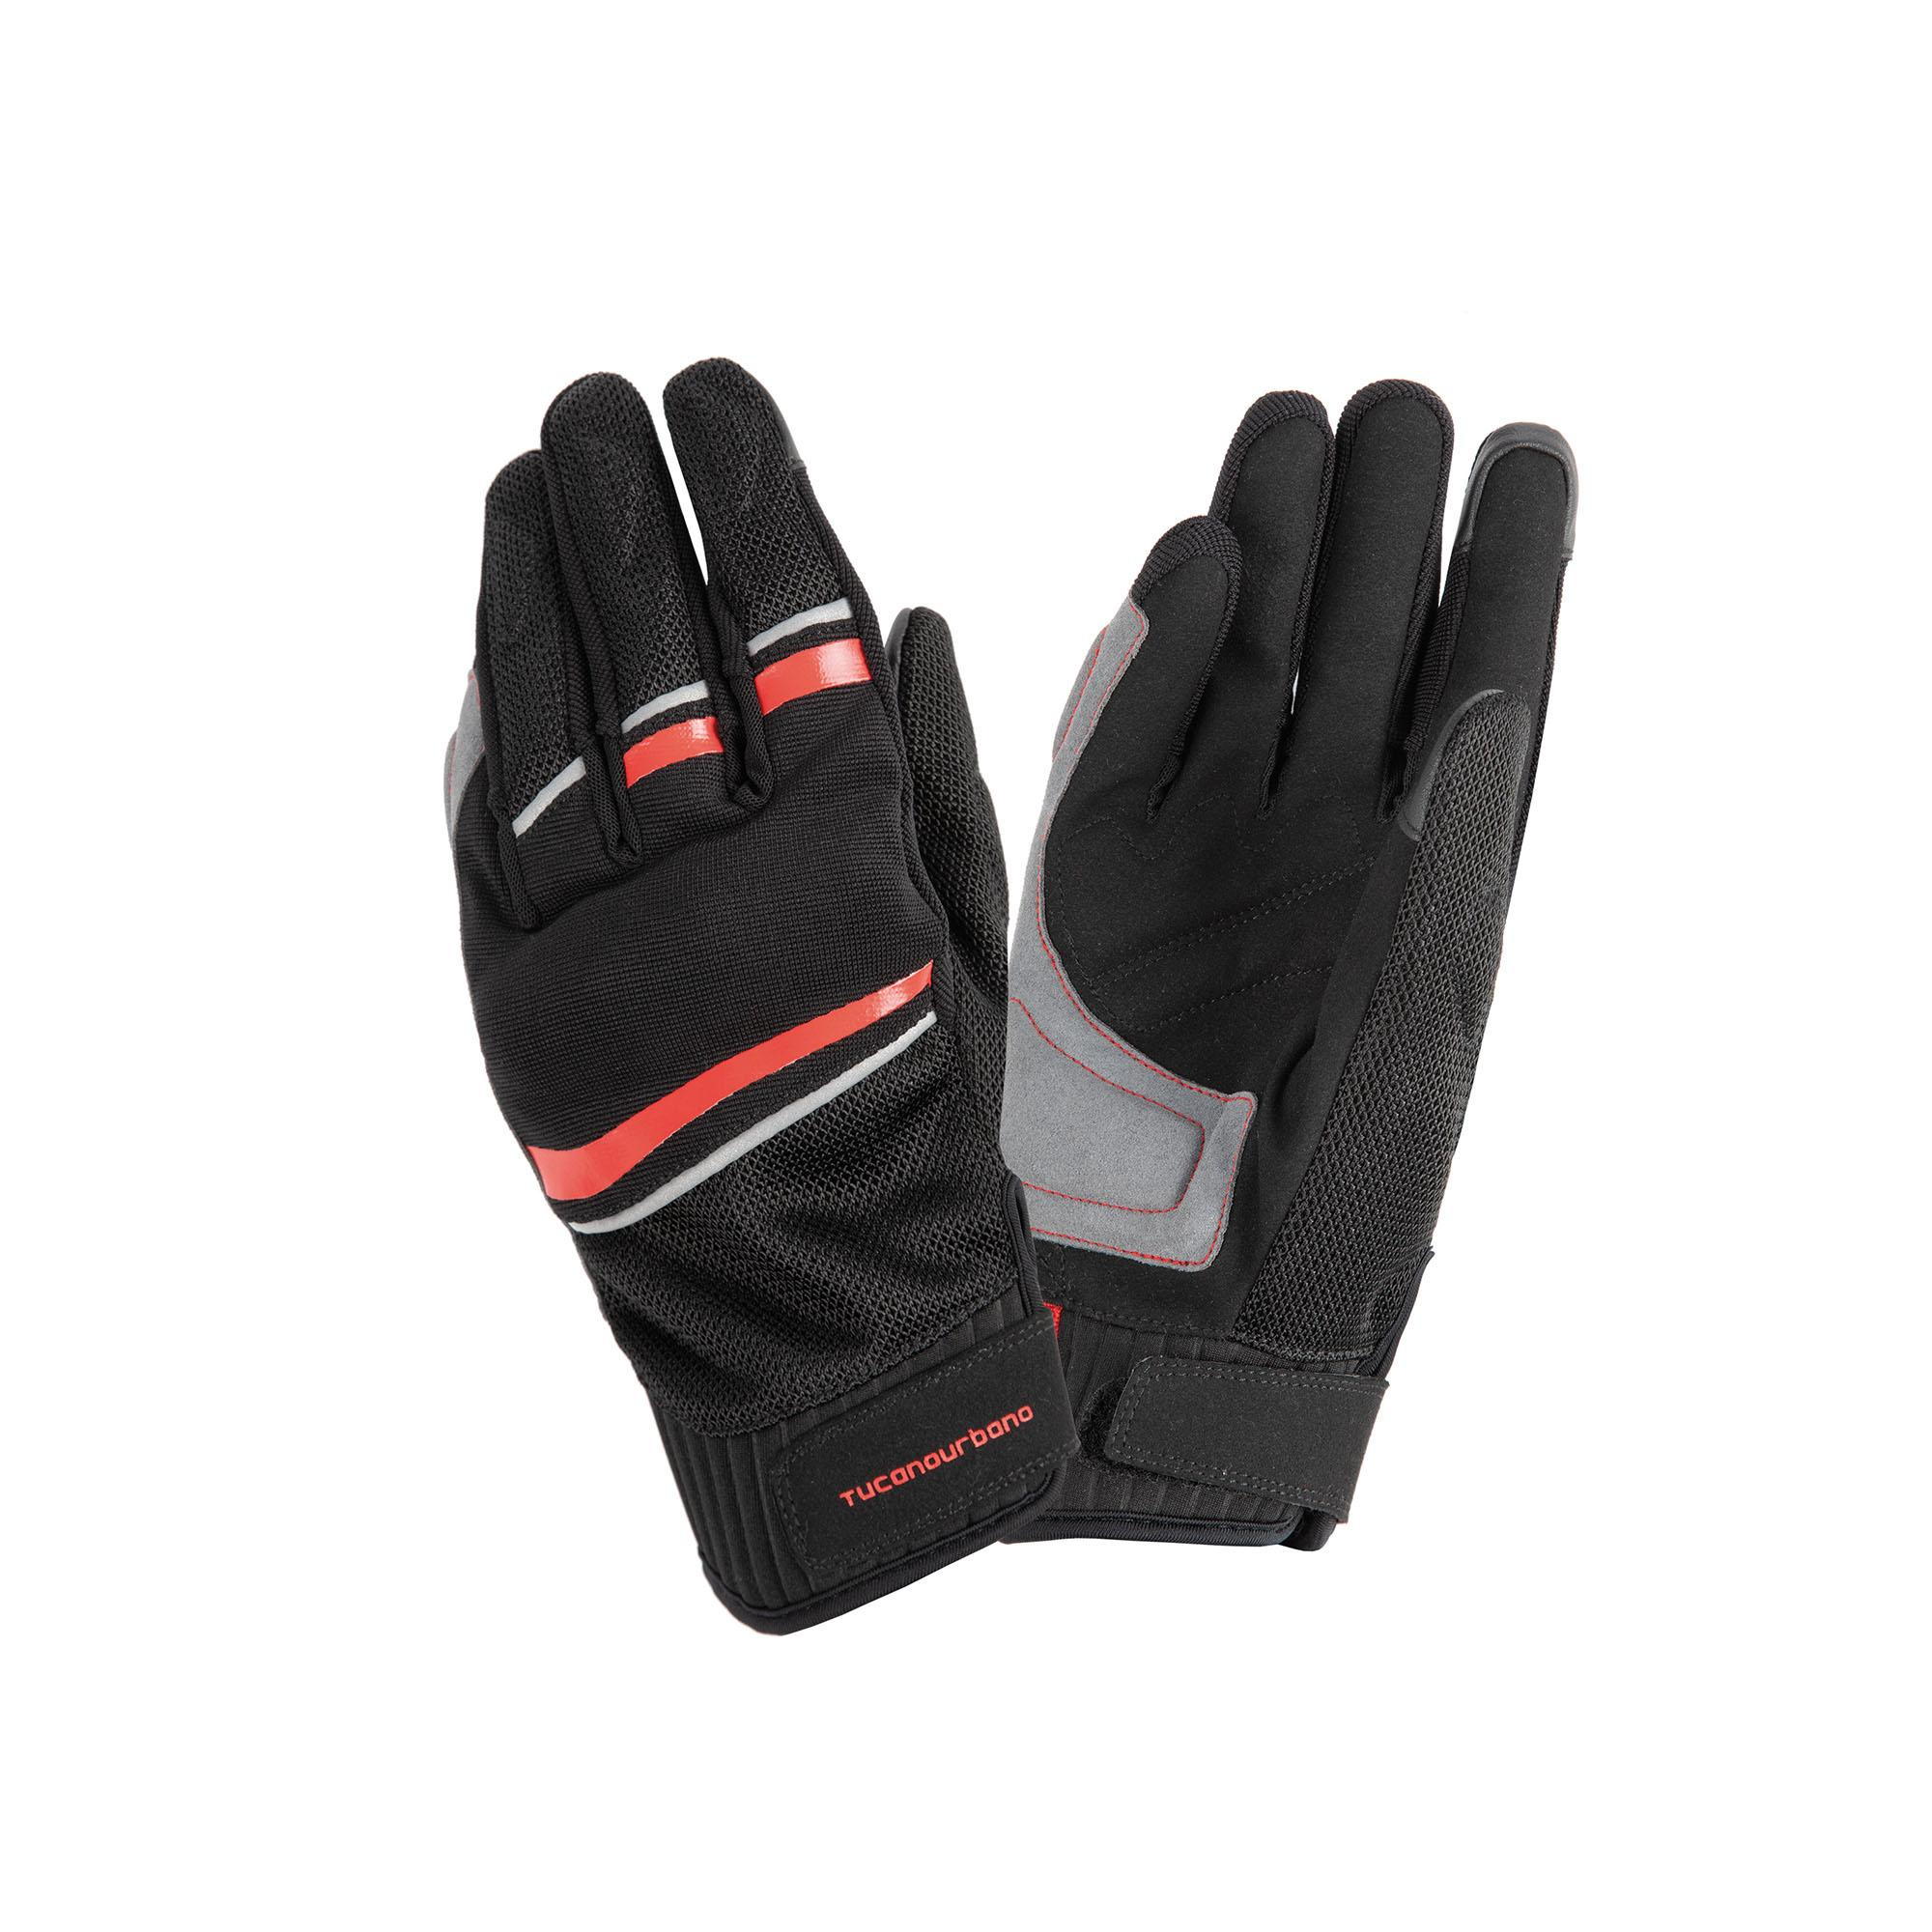 Gloves Penna Black–Reflex Red Tucano Urbano